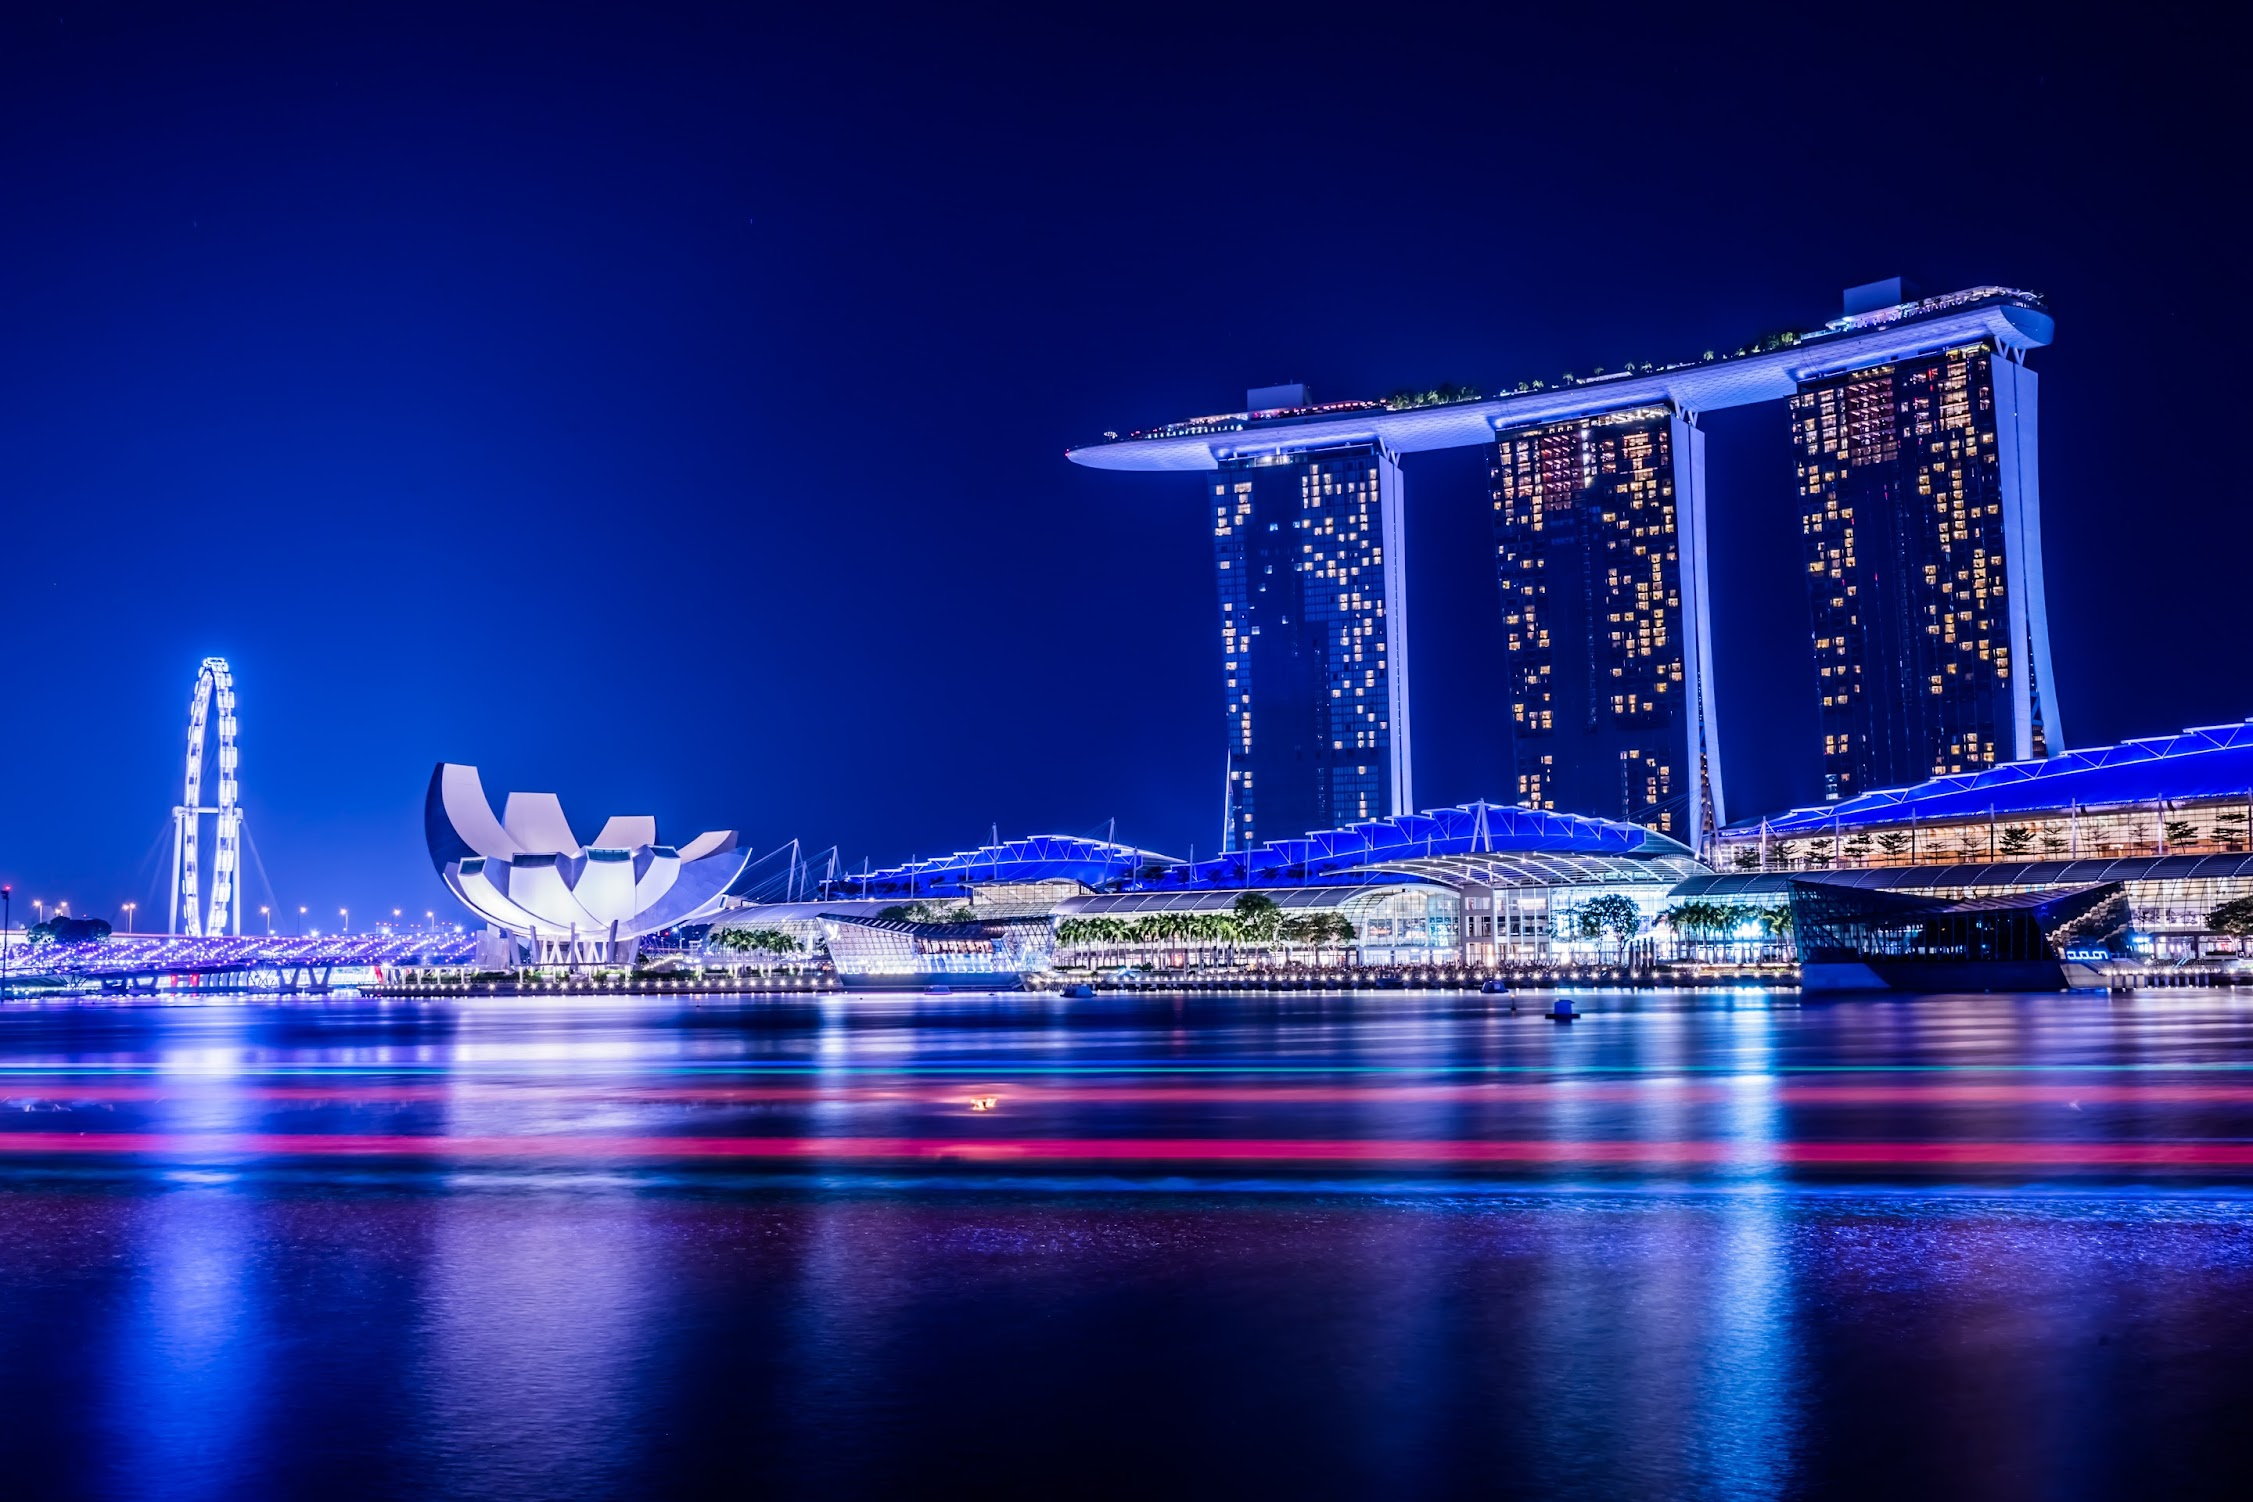 Singapore Marina Bay Sands night view7